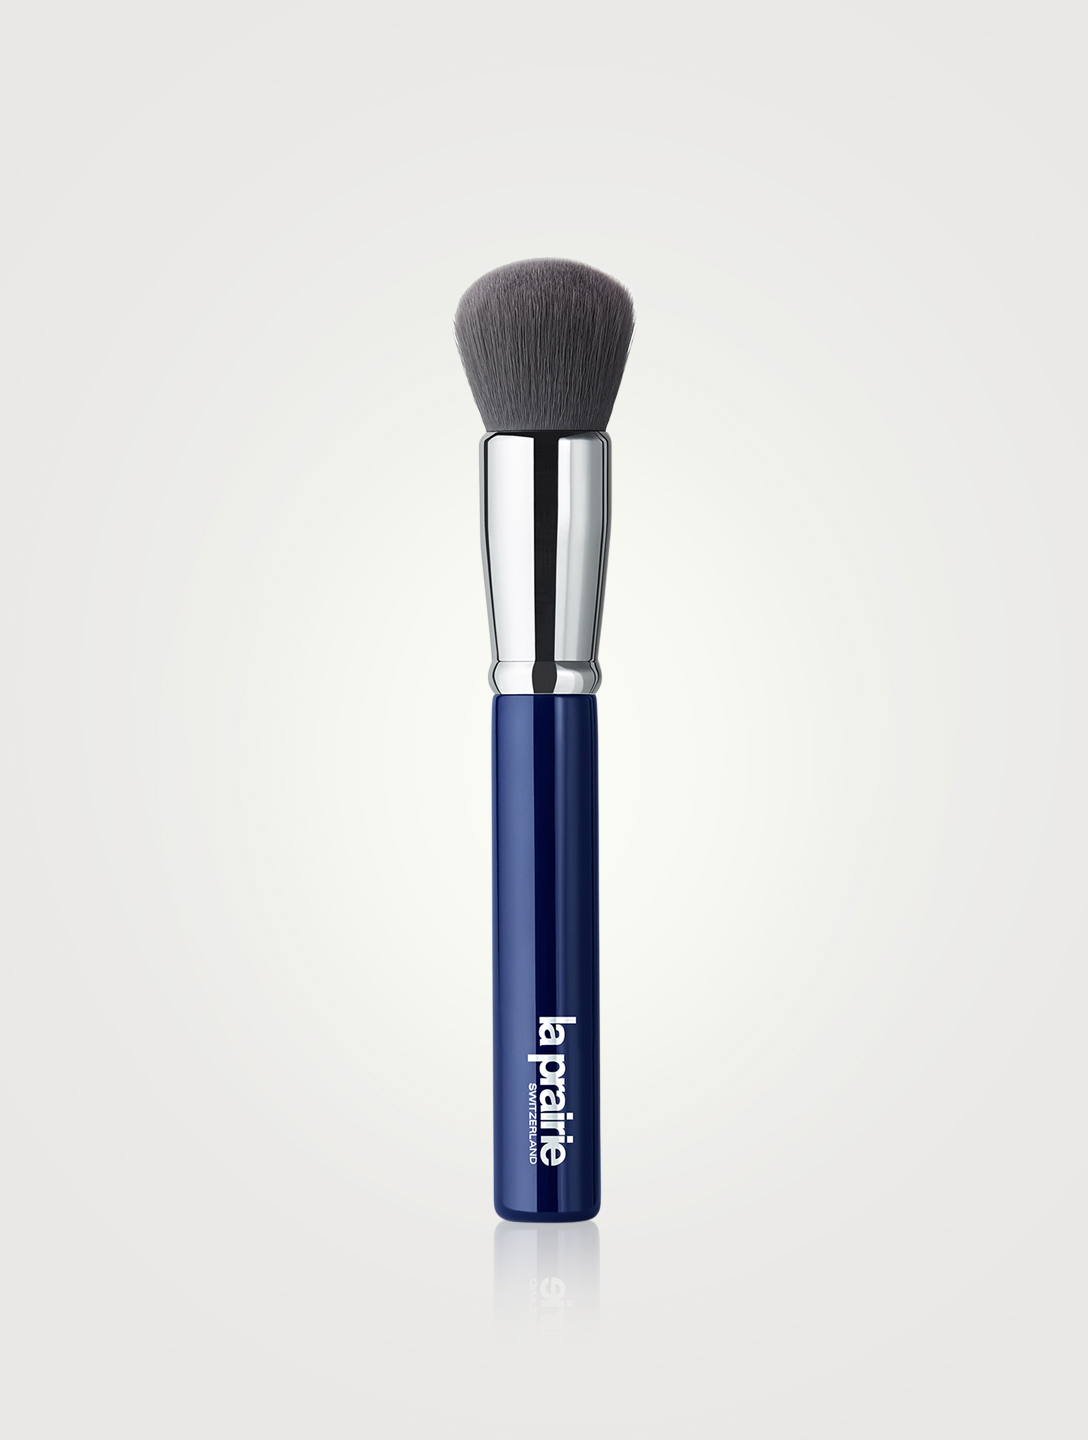 LA PRAIRIE Powder Foundation Brush Beauty